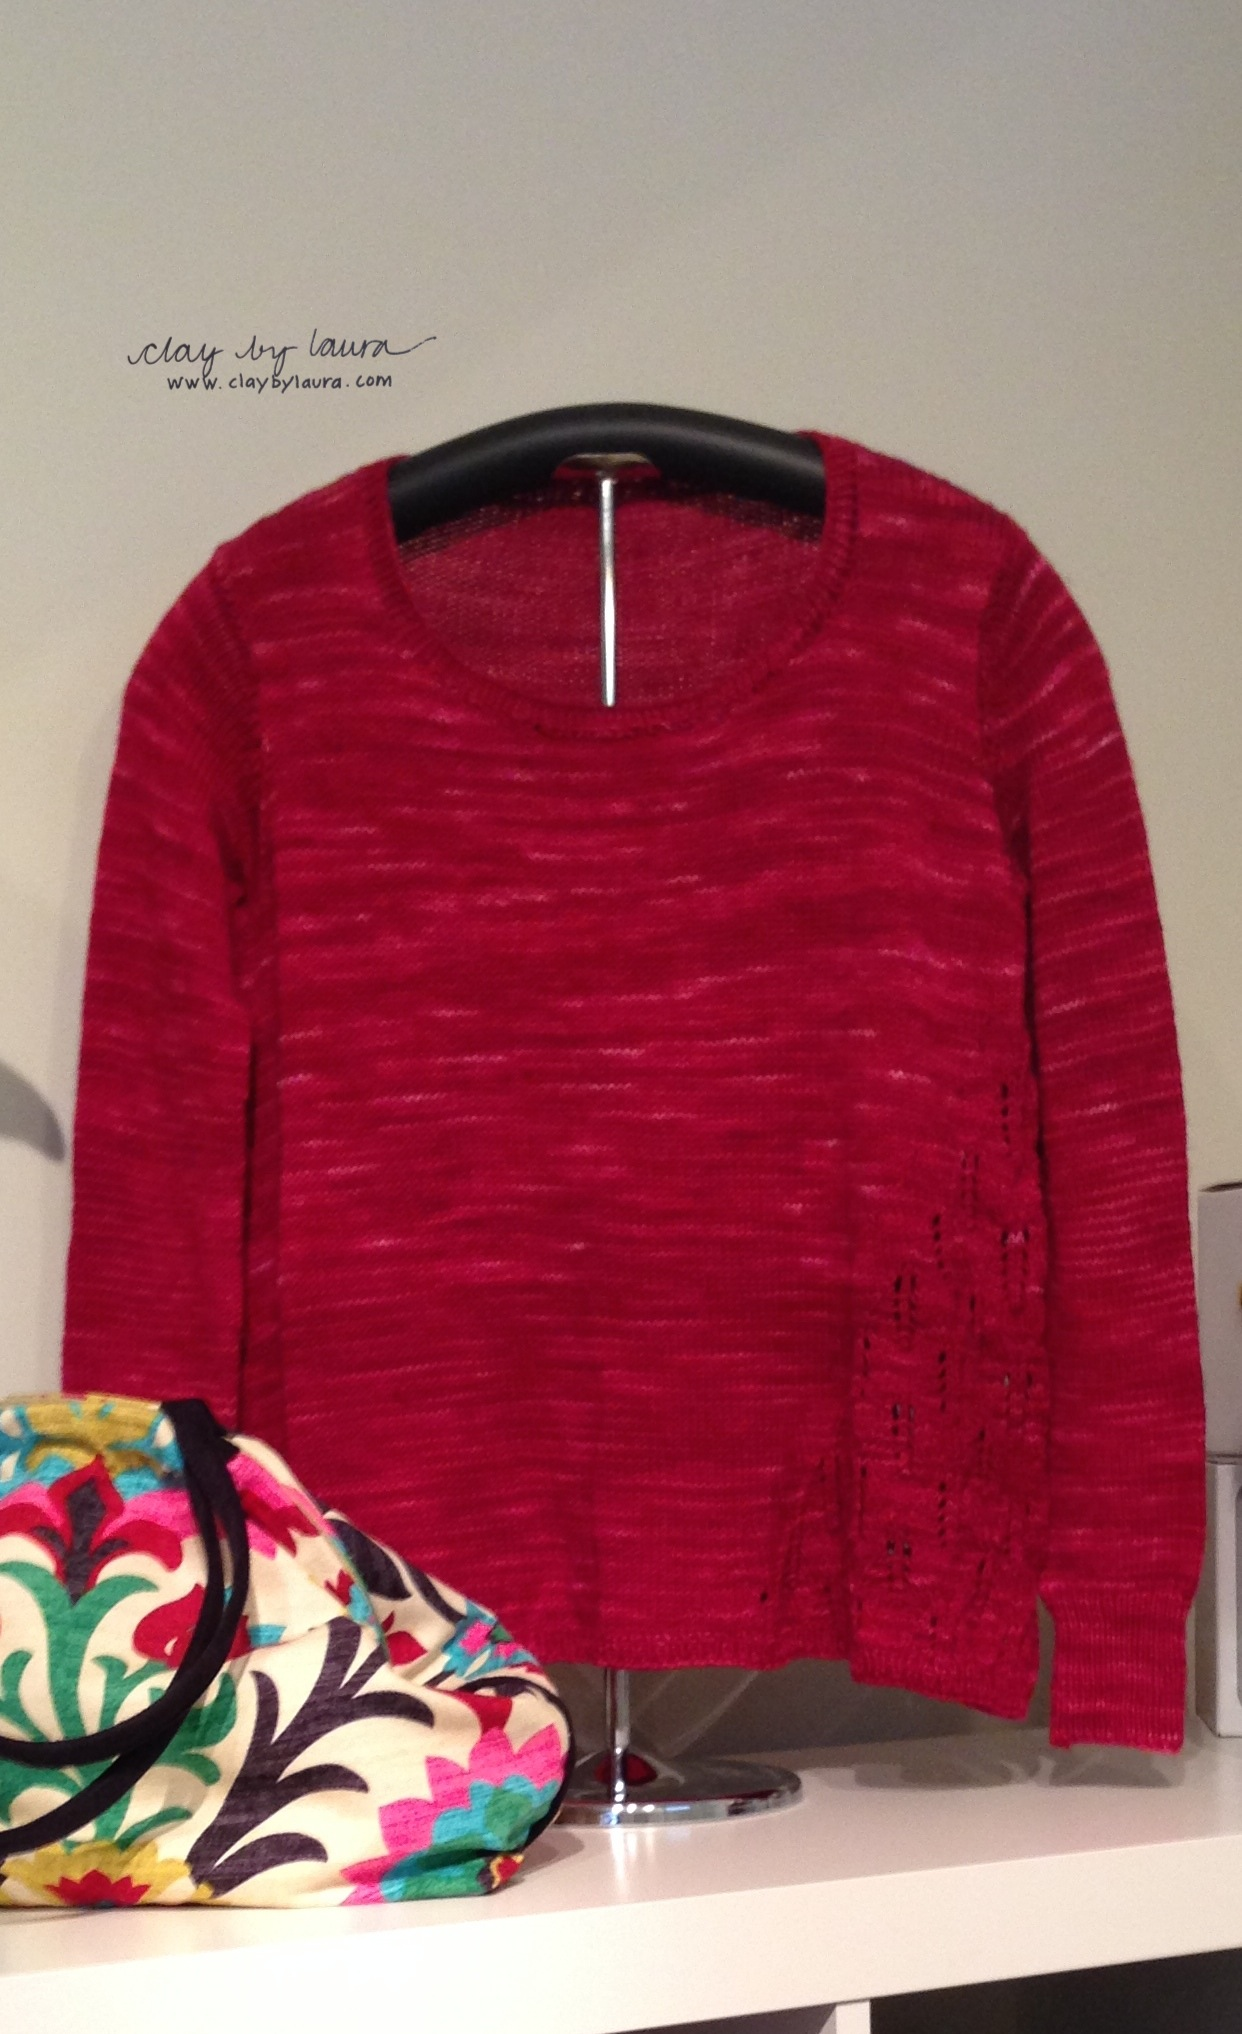 My latest sweater is on display at  The Knot House  in Frederick, Md.